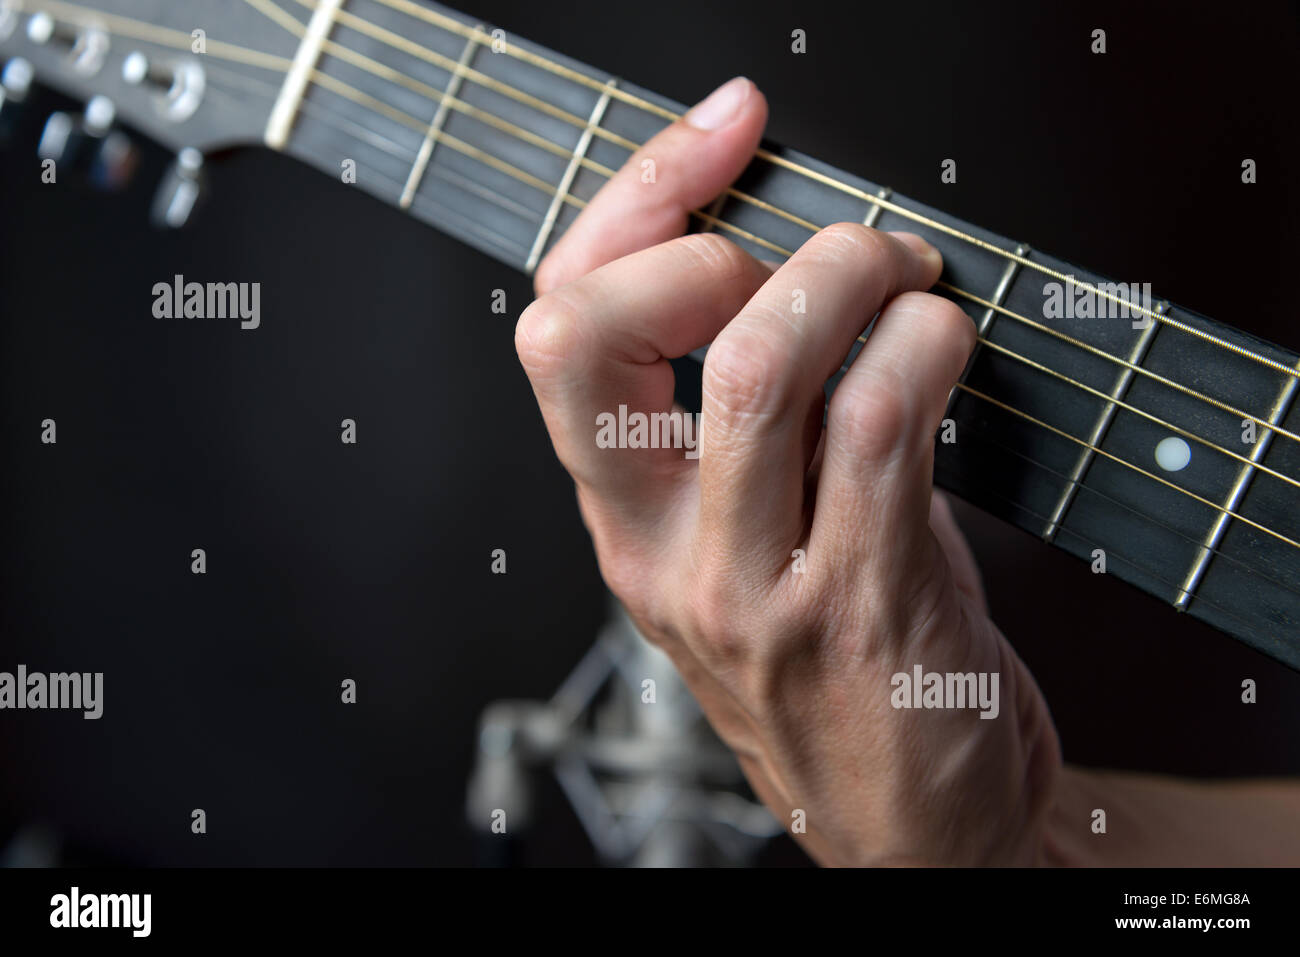 G Bar Chord Stock Photos G Bar Chord Stock Images Alamy